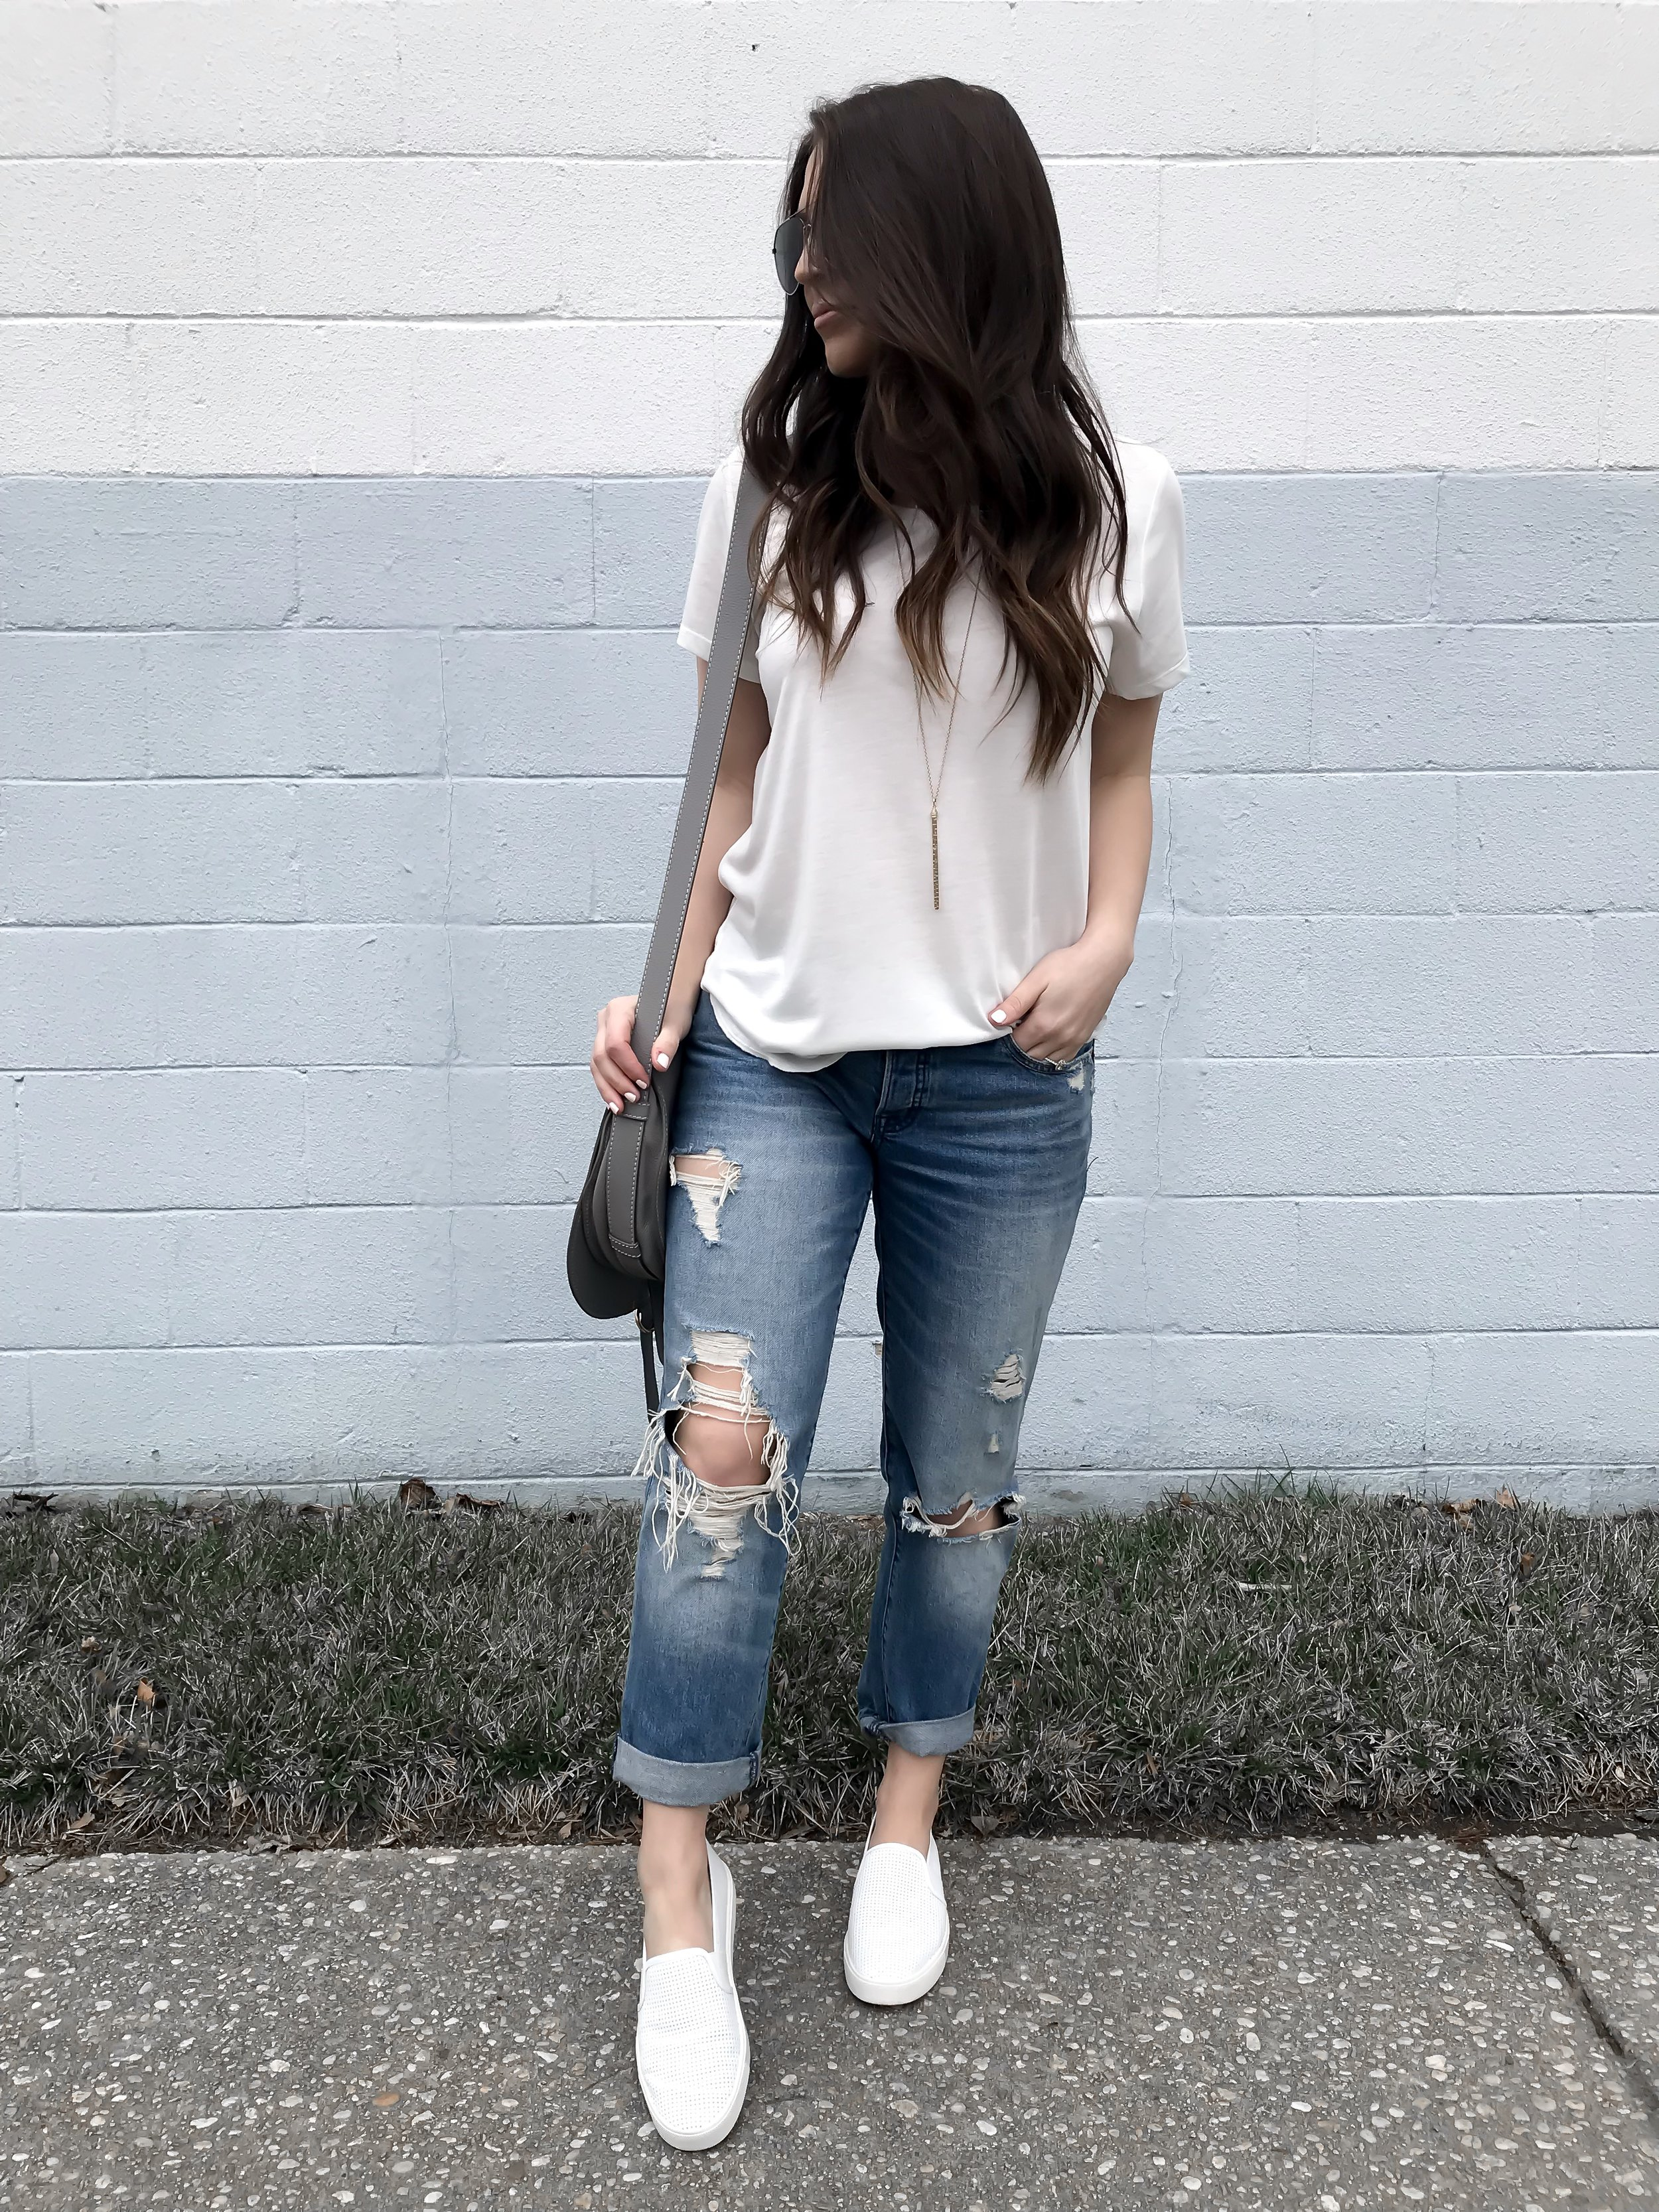 Instagram Round Up + Current Sales | Pine Barren Beauty | outfit of the day, outfit details, spring outfit, basic white tee, distressed denim